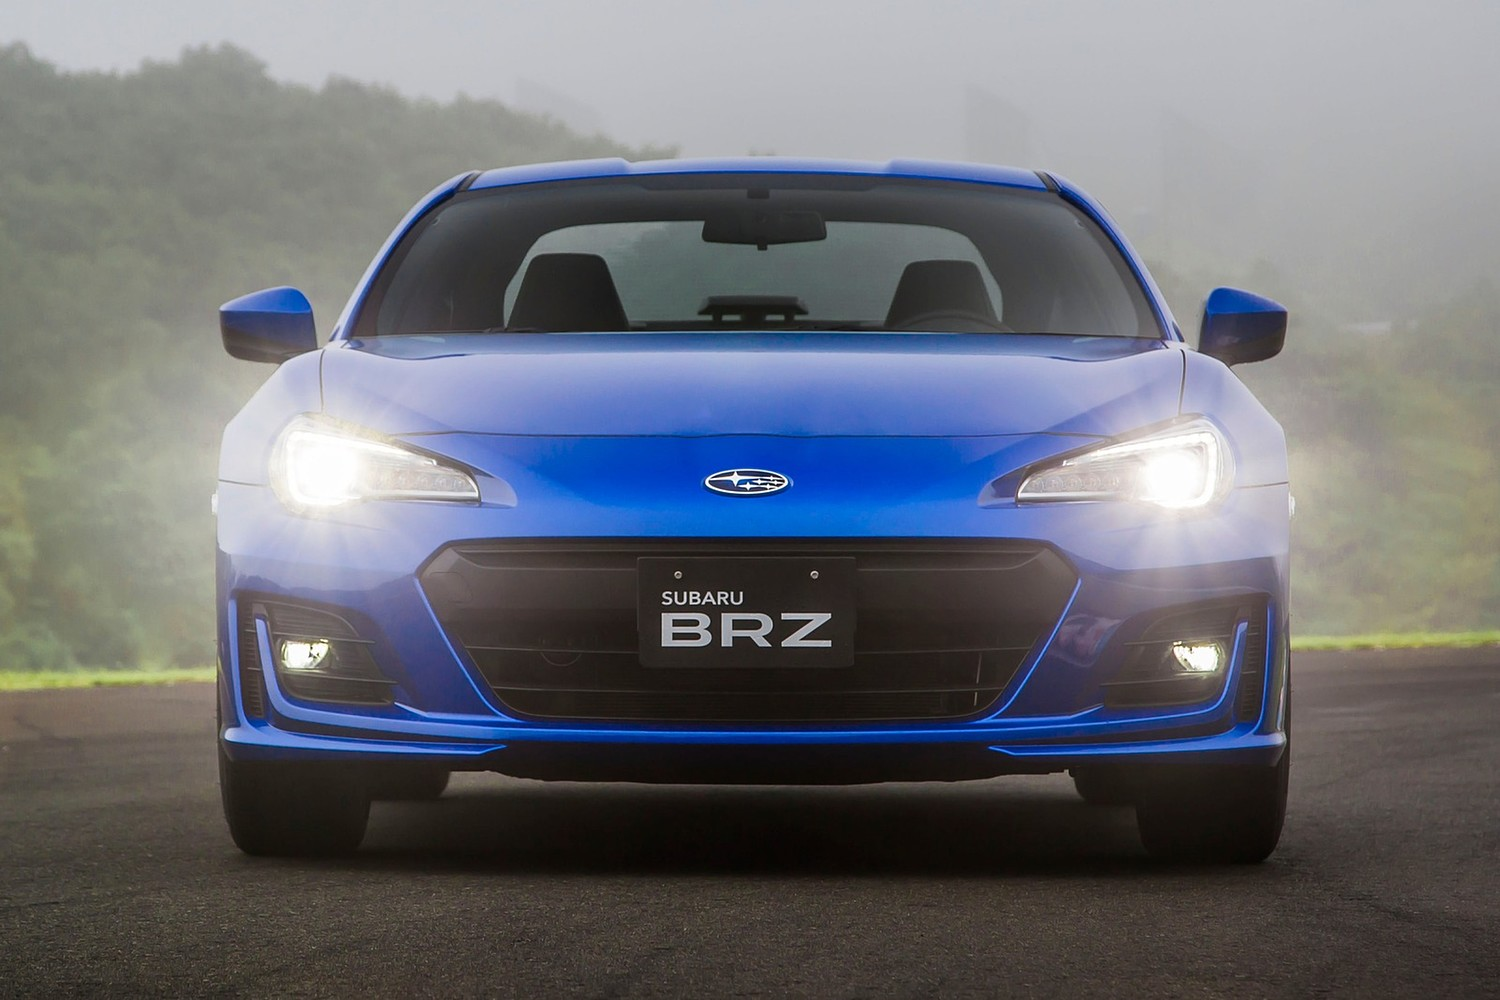 Subaru BRZ Limited Coupe Exterior (2017 model year shown)